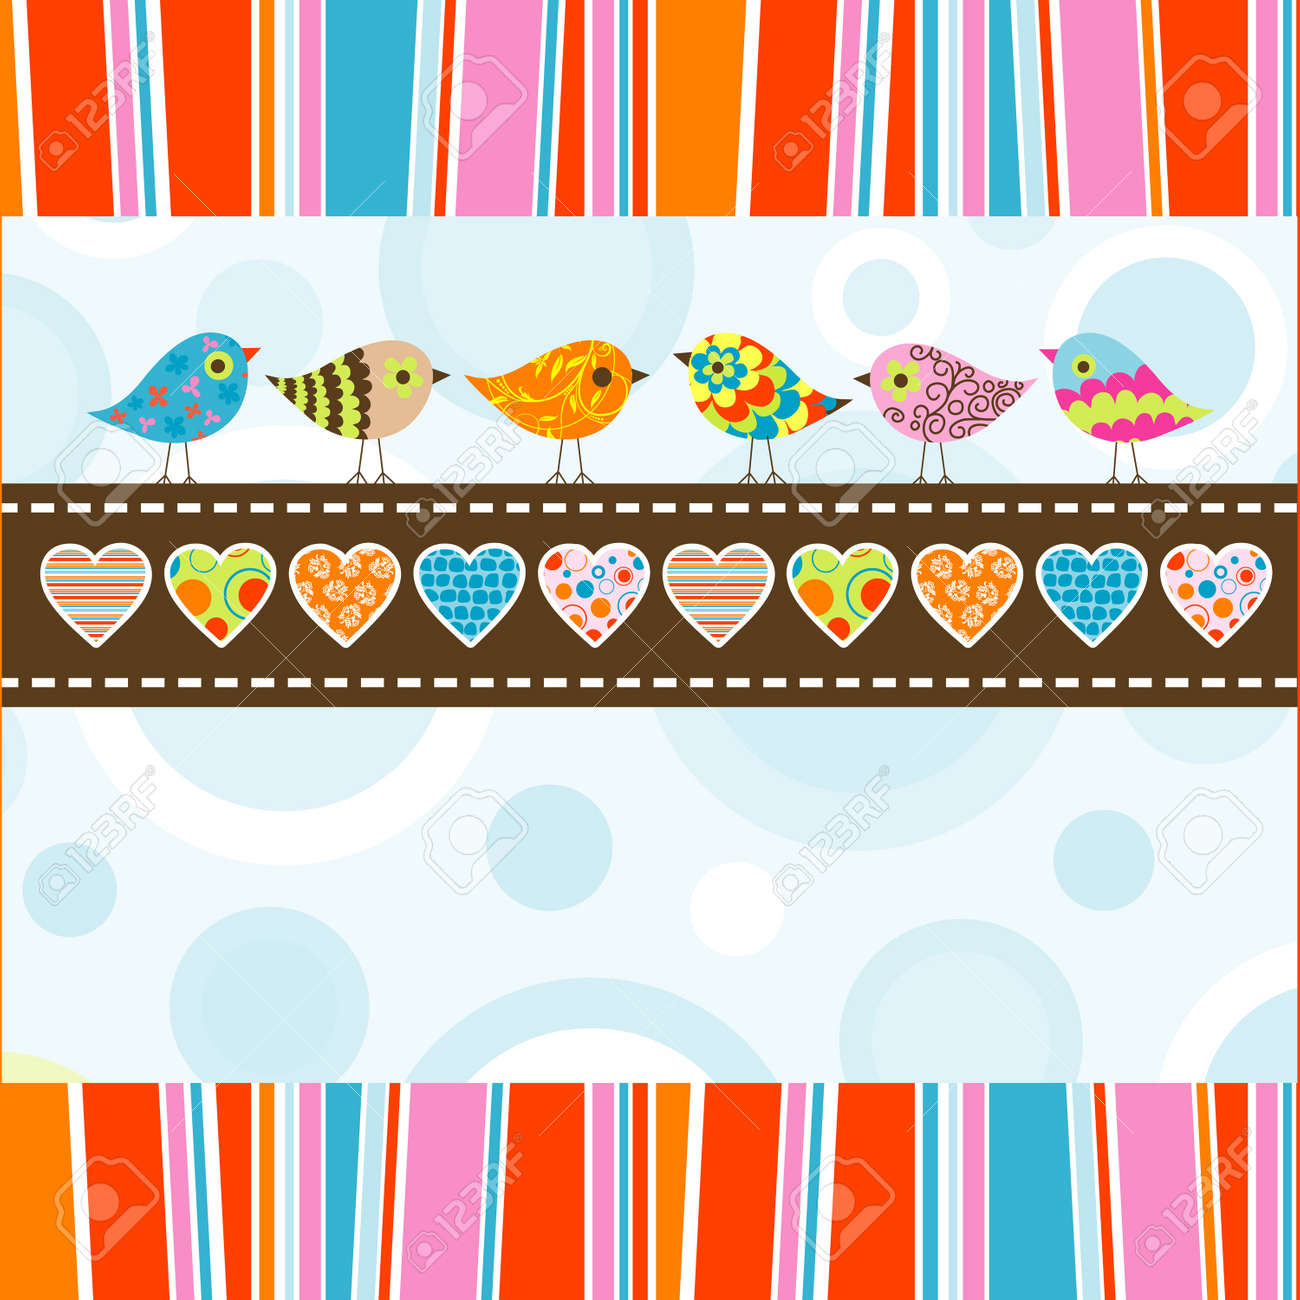 Template greeting card, illustration Stock Vector - 12137977